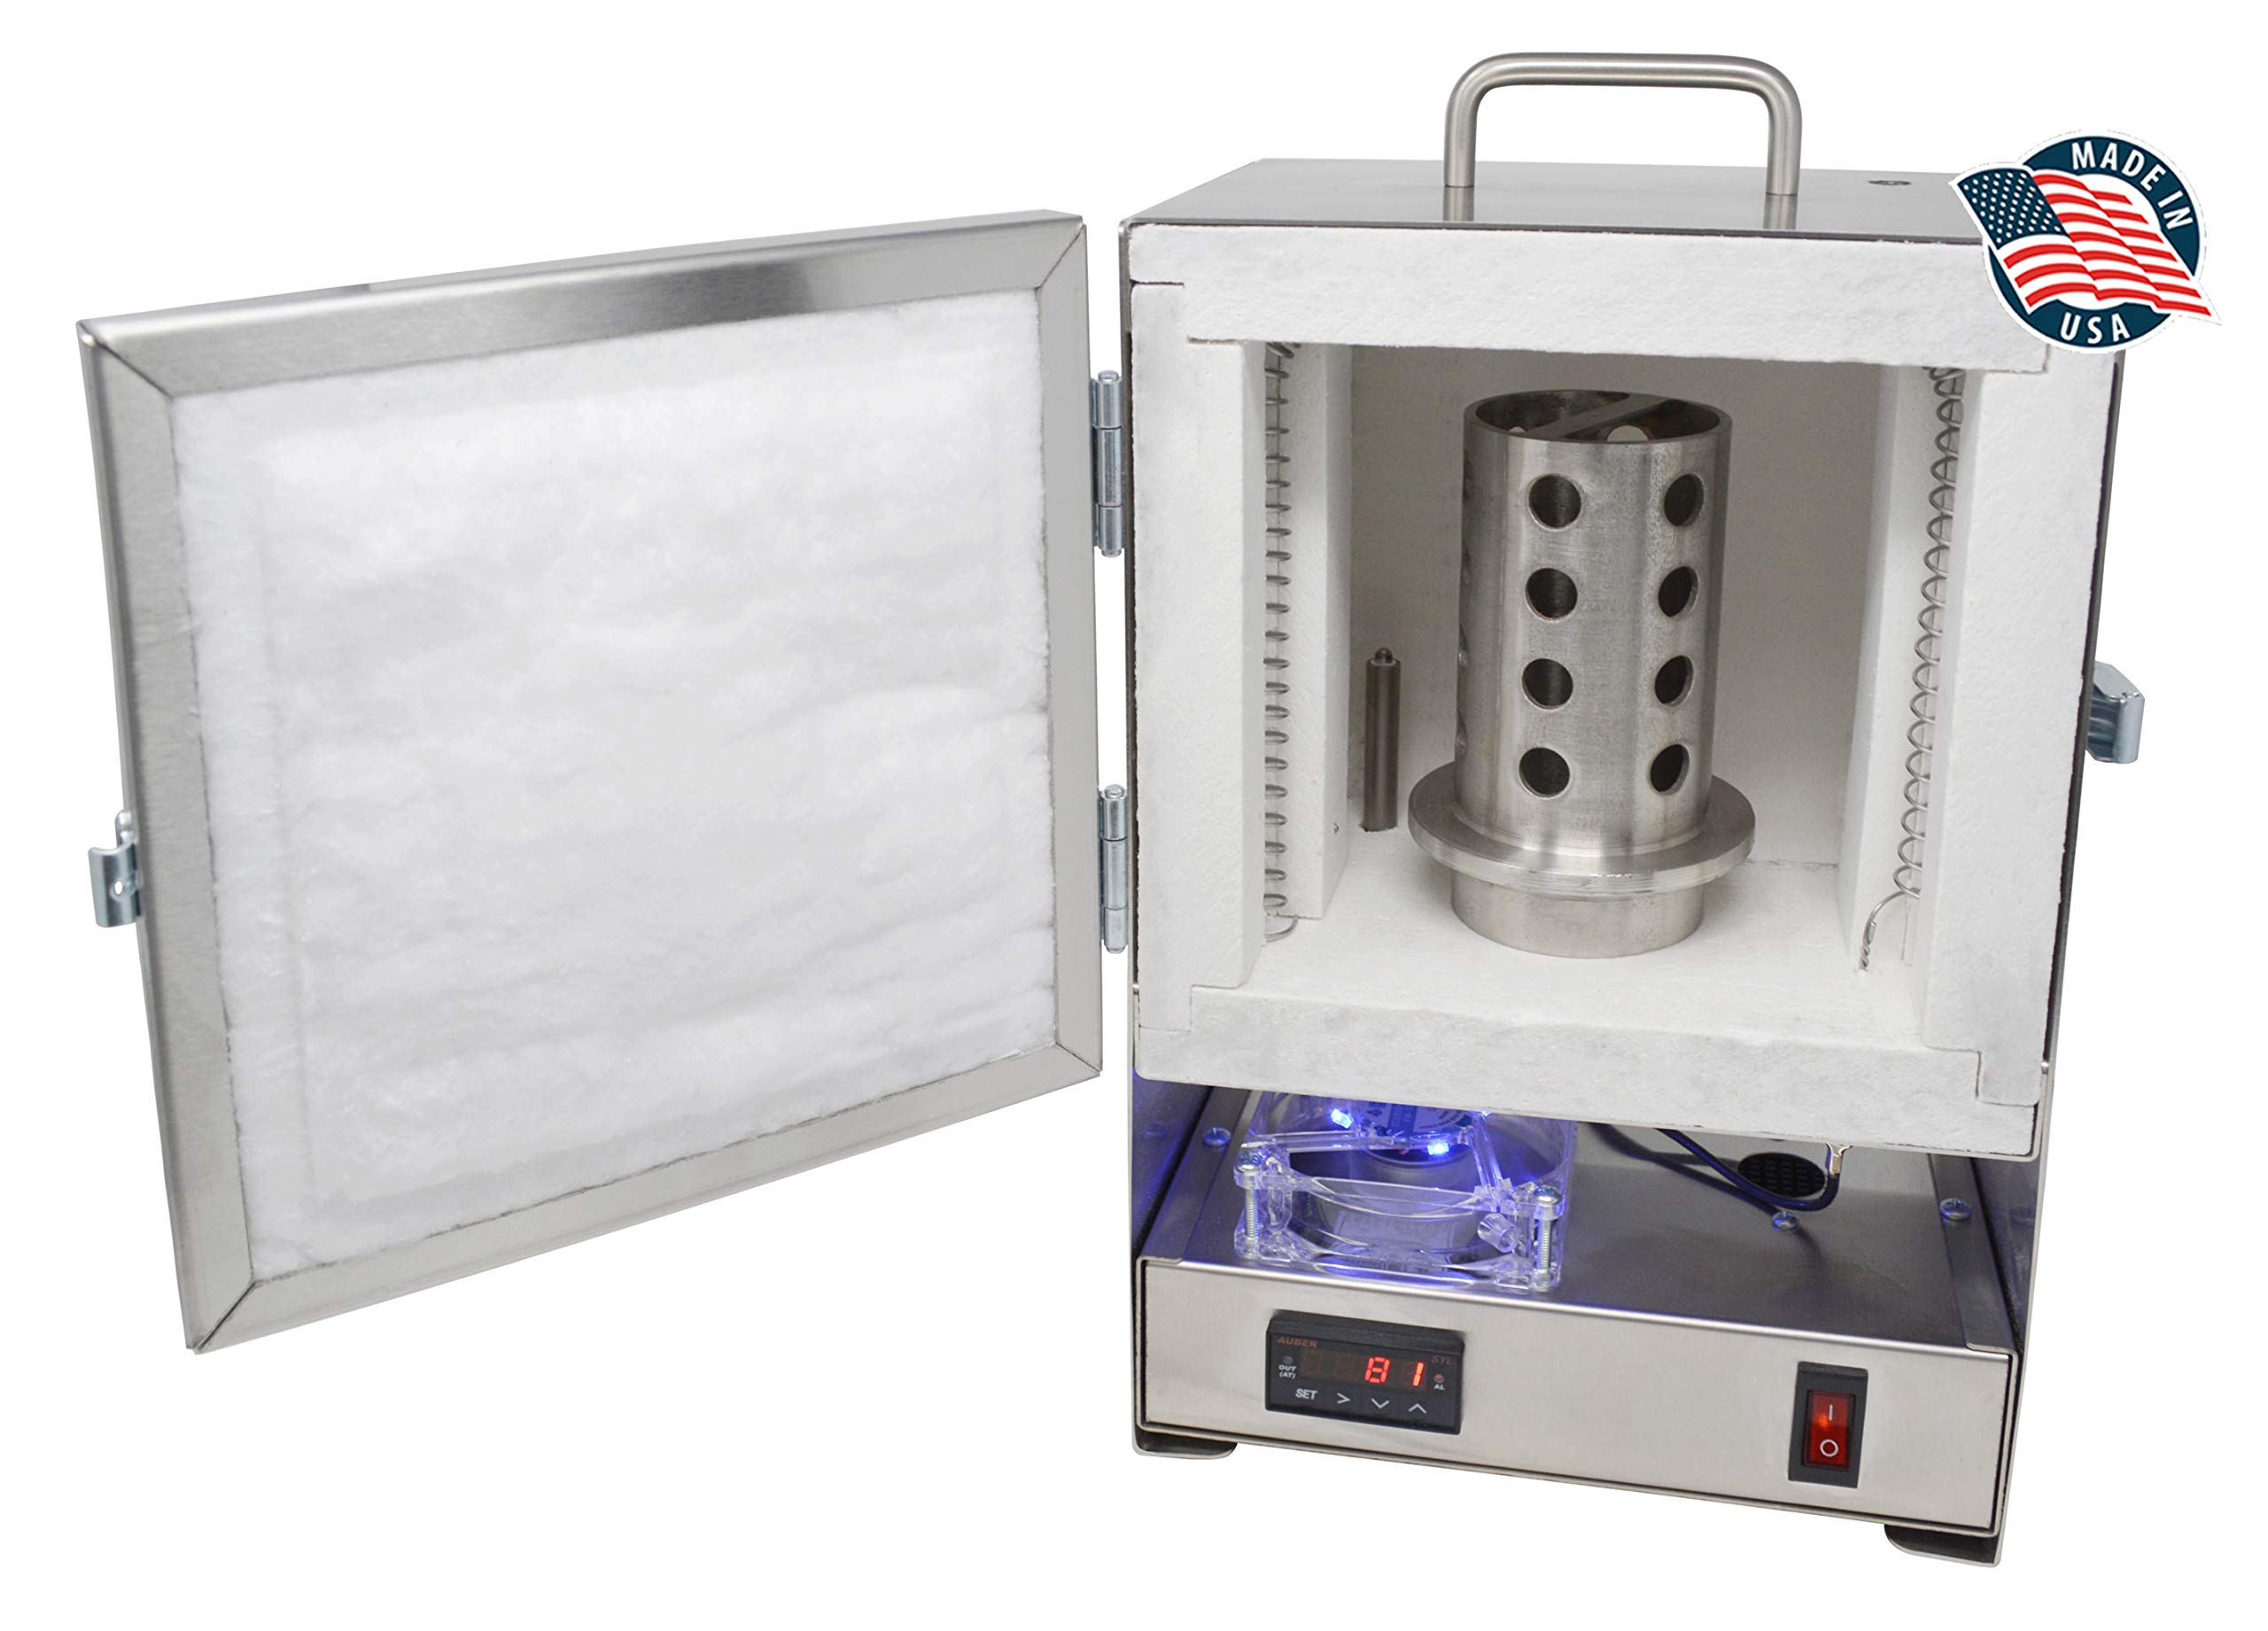 Tabletop Hi-Temp 2200 Degree Electric Burnout Oven Kiln Vent Hole Standard Controller Furnace Jewelry Making Dental Casting Wax 3D Resin PLA Burnout Made in The U.S.A. by PMC Supplies LLC